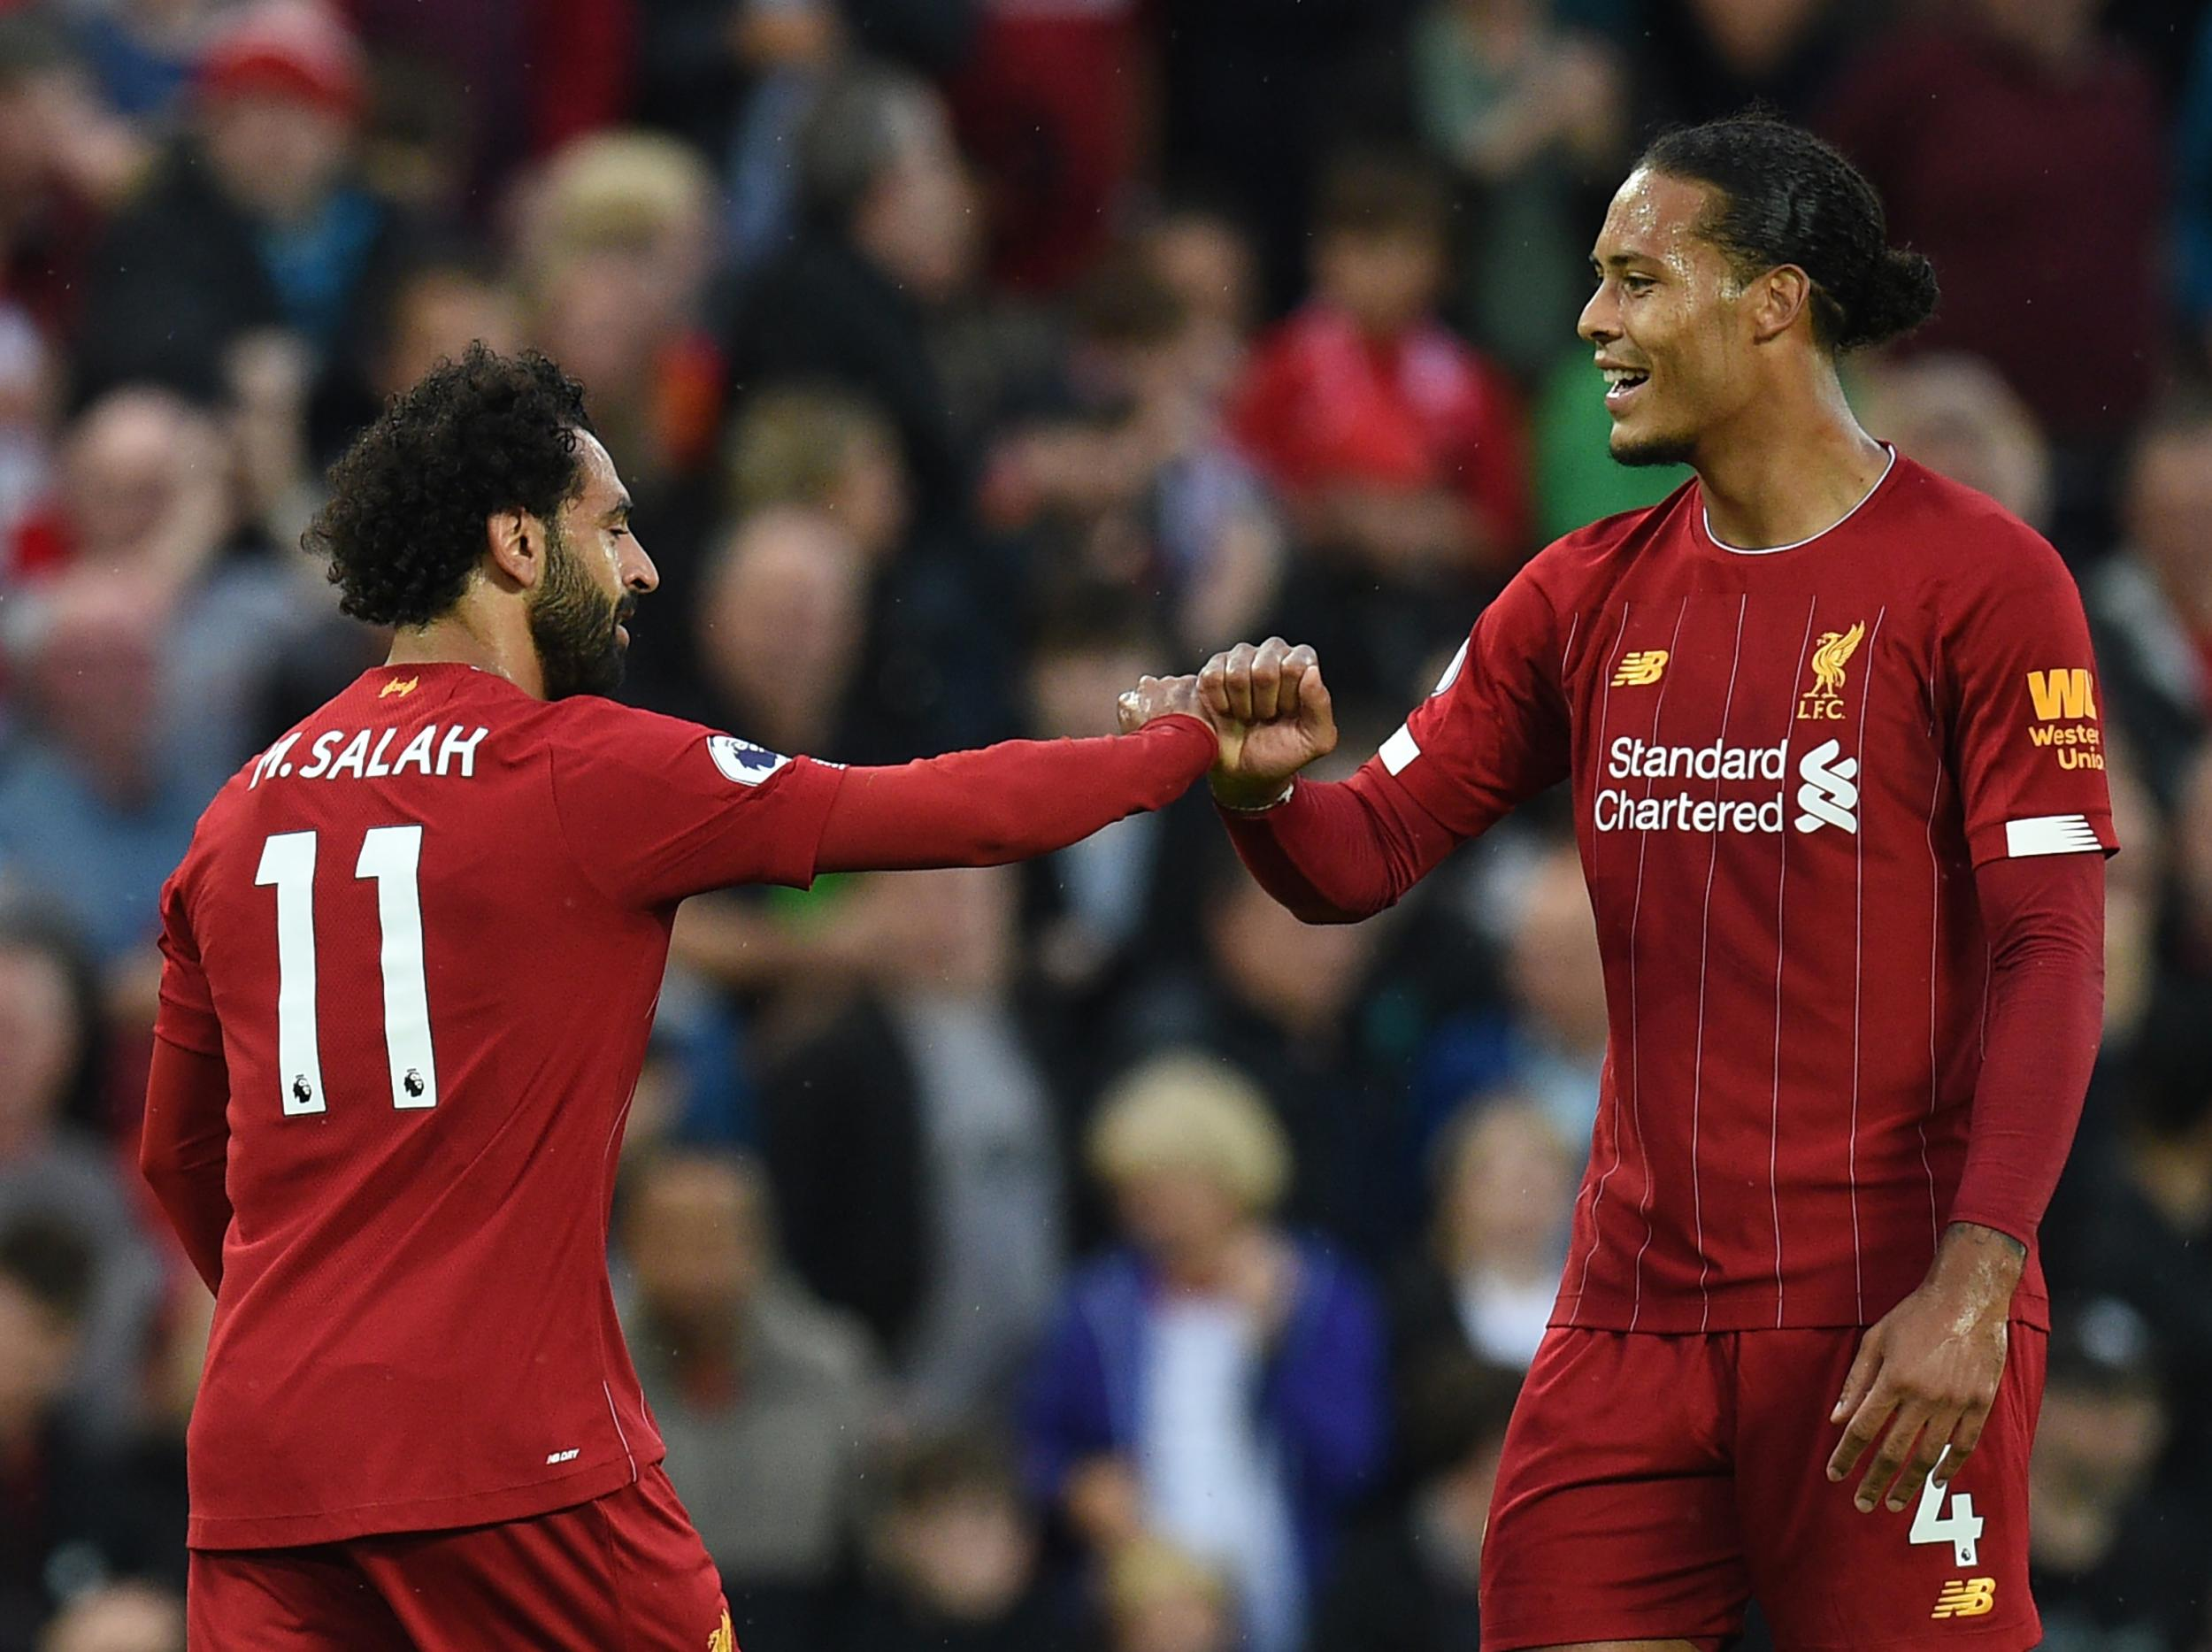 Southampton vs Liverpool live stream: How to watch Premier League match online and on TV